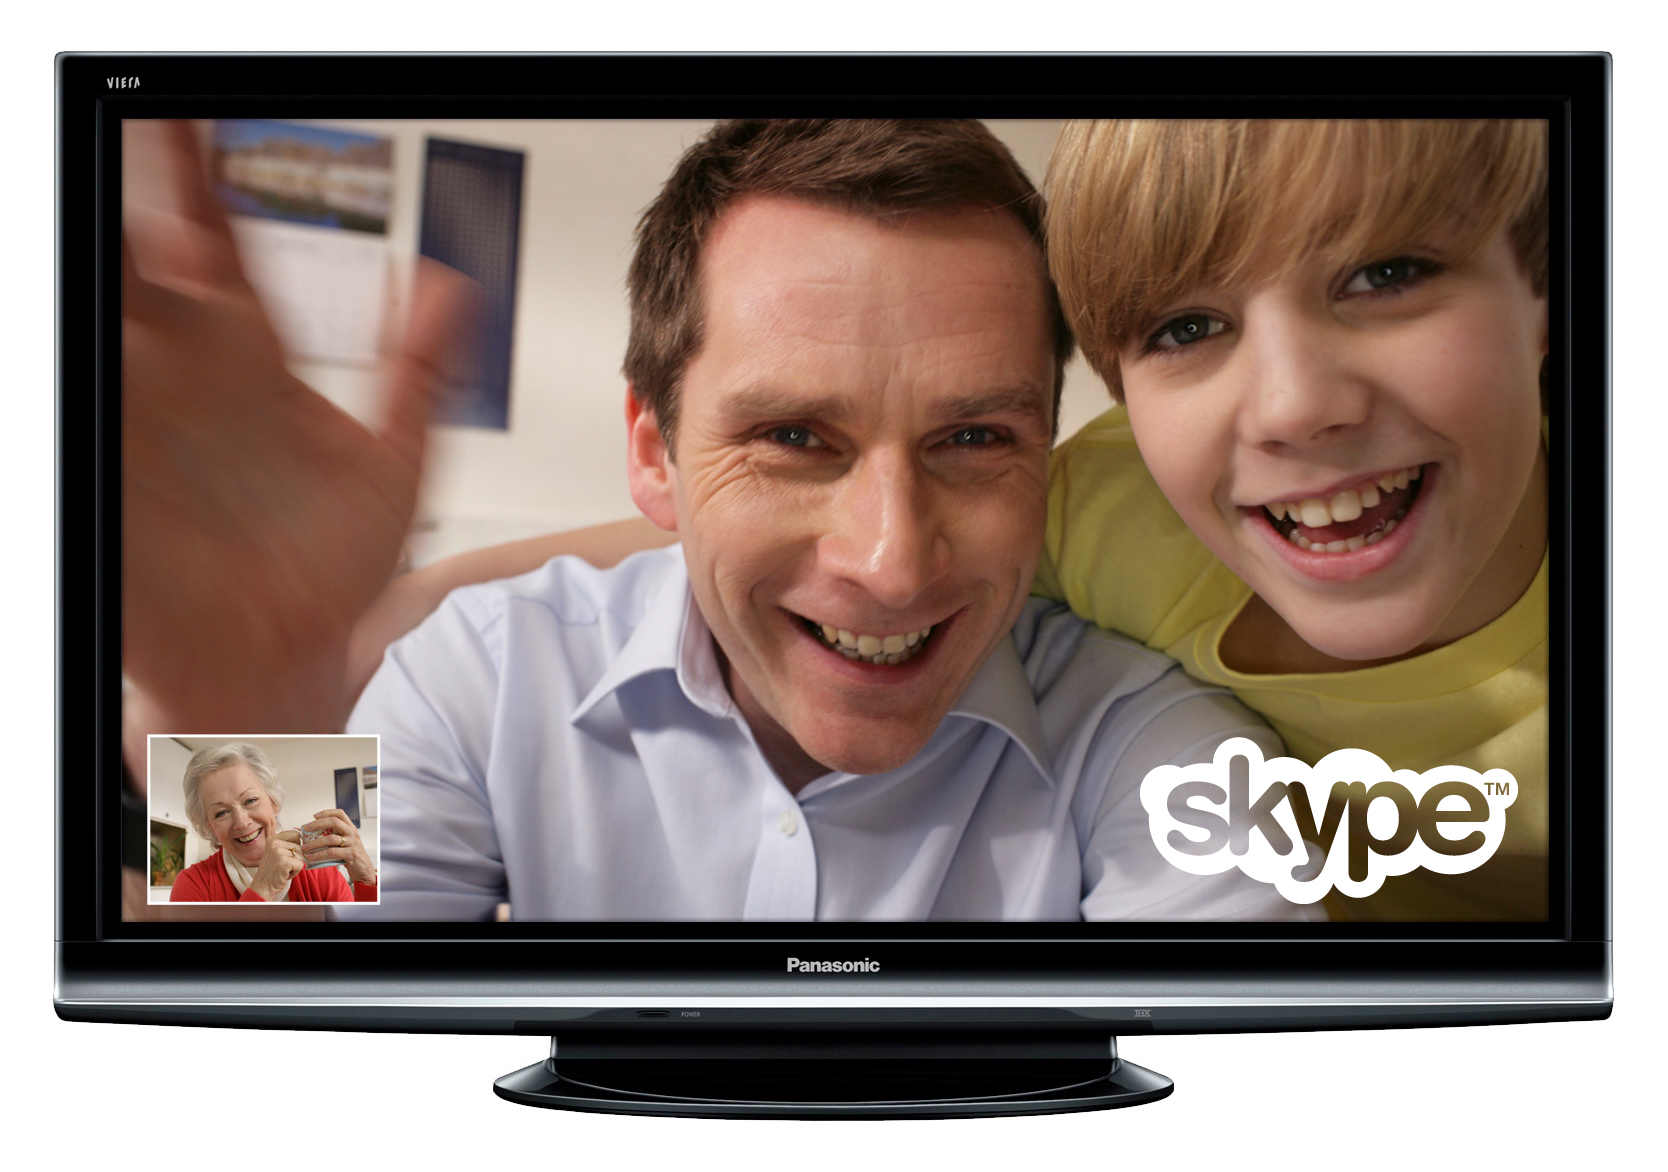 'It's Time for Skype' Campaign Launches in U.S. and U.K.